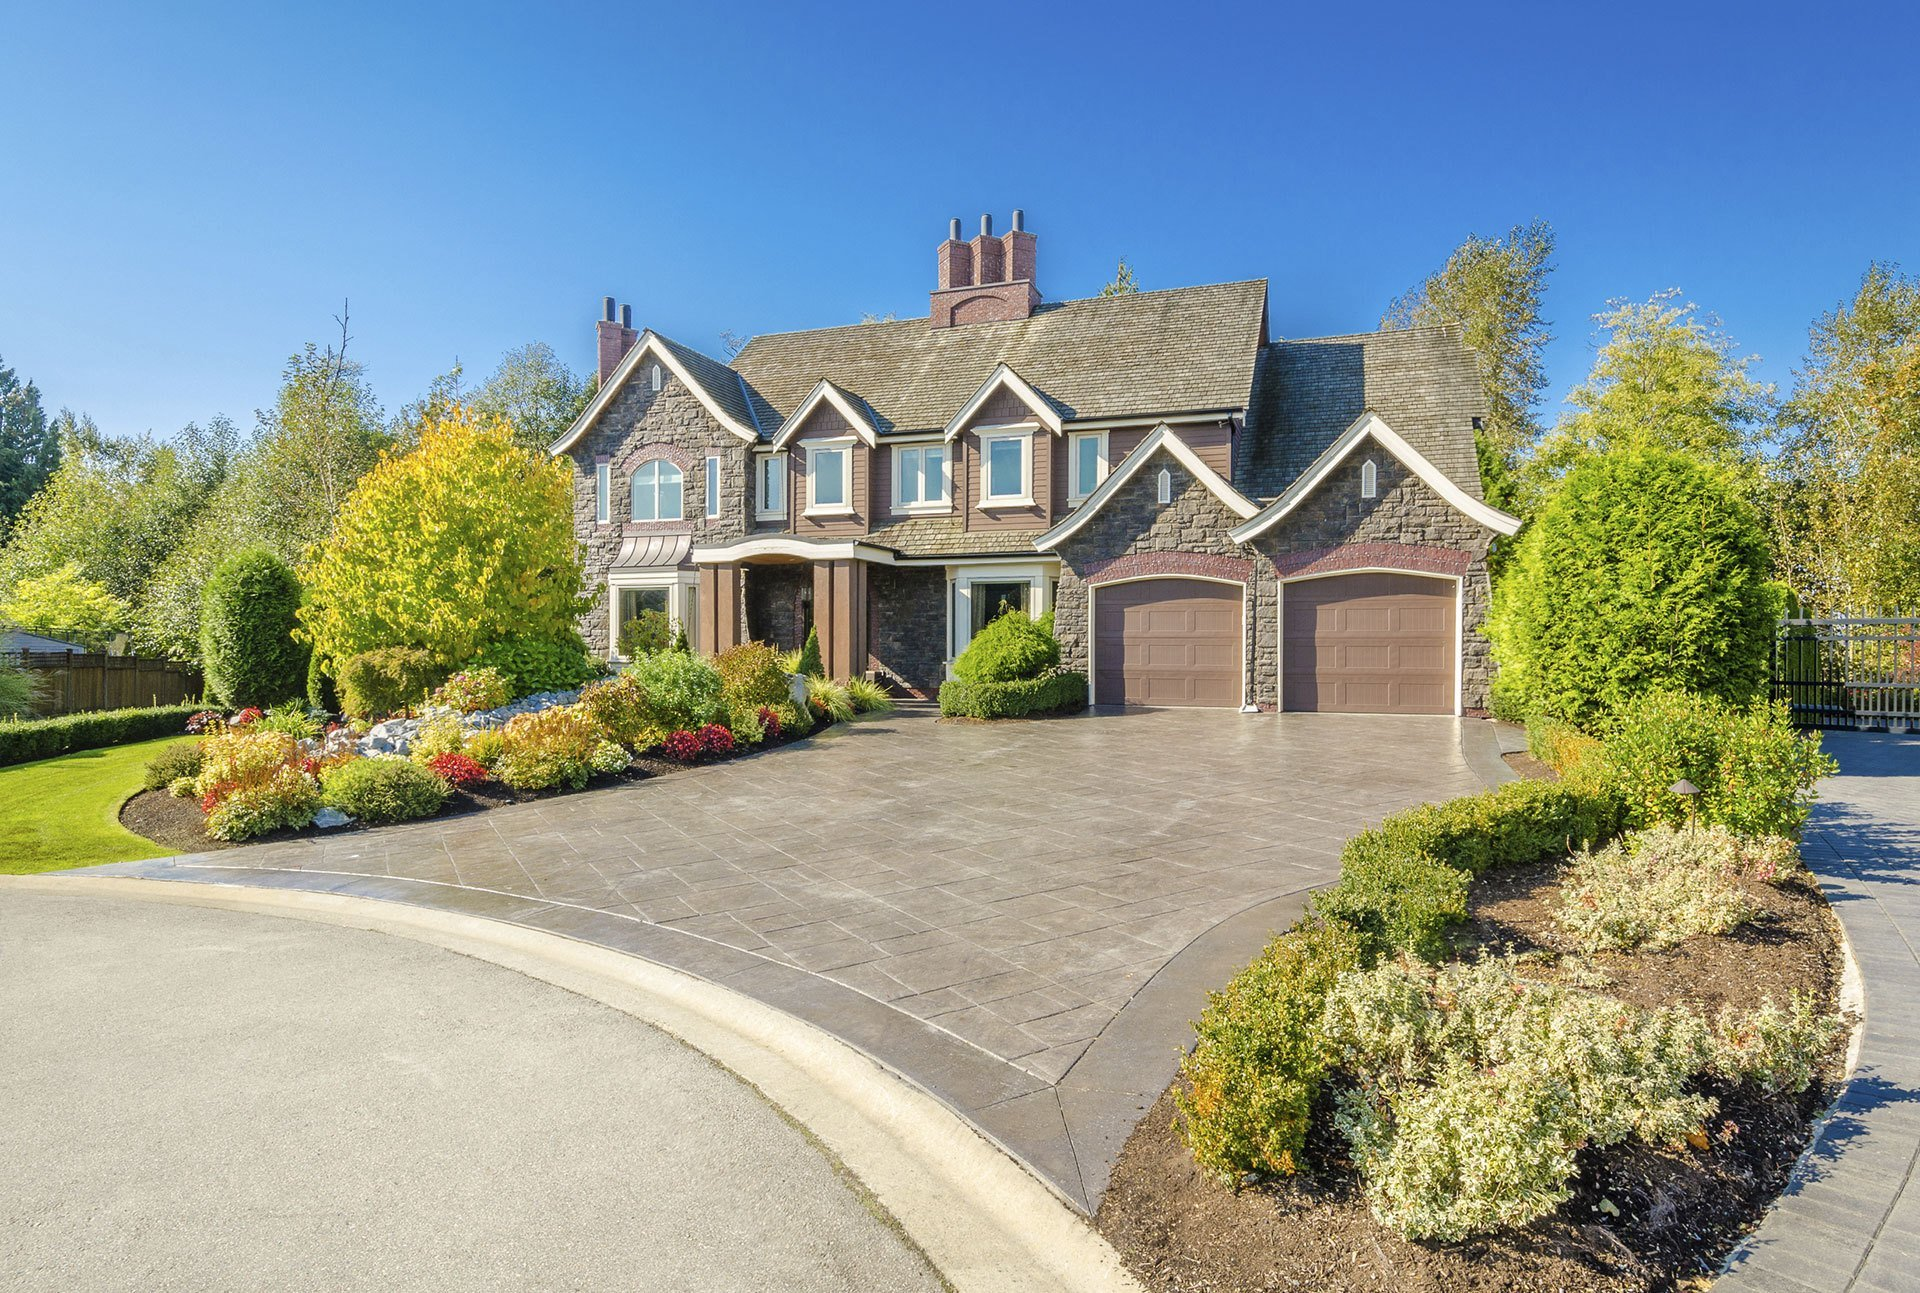 landscaping contractor - Amherst, NY